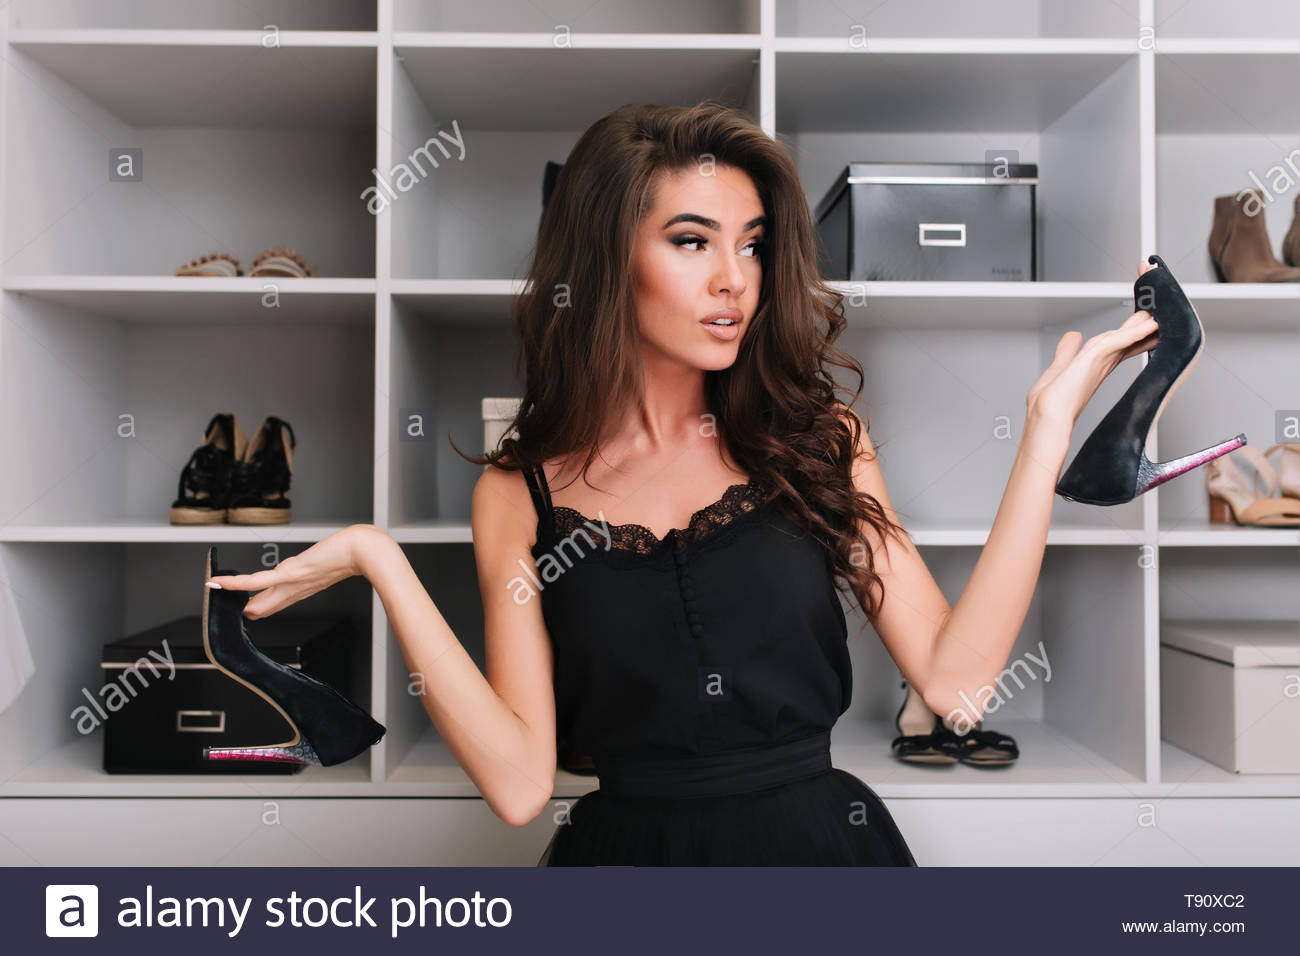 Young Woman Wearing High Heels Stockfotos & Young Woman